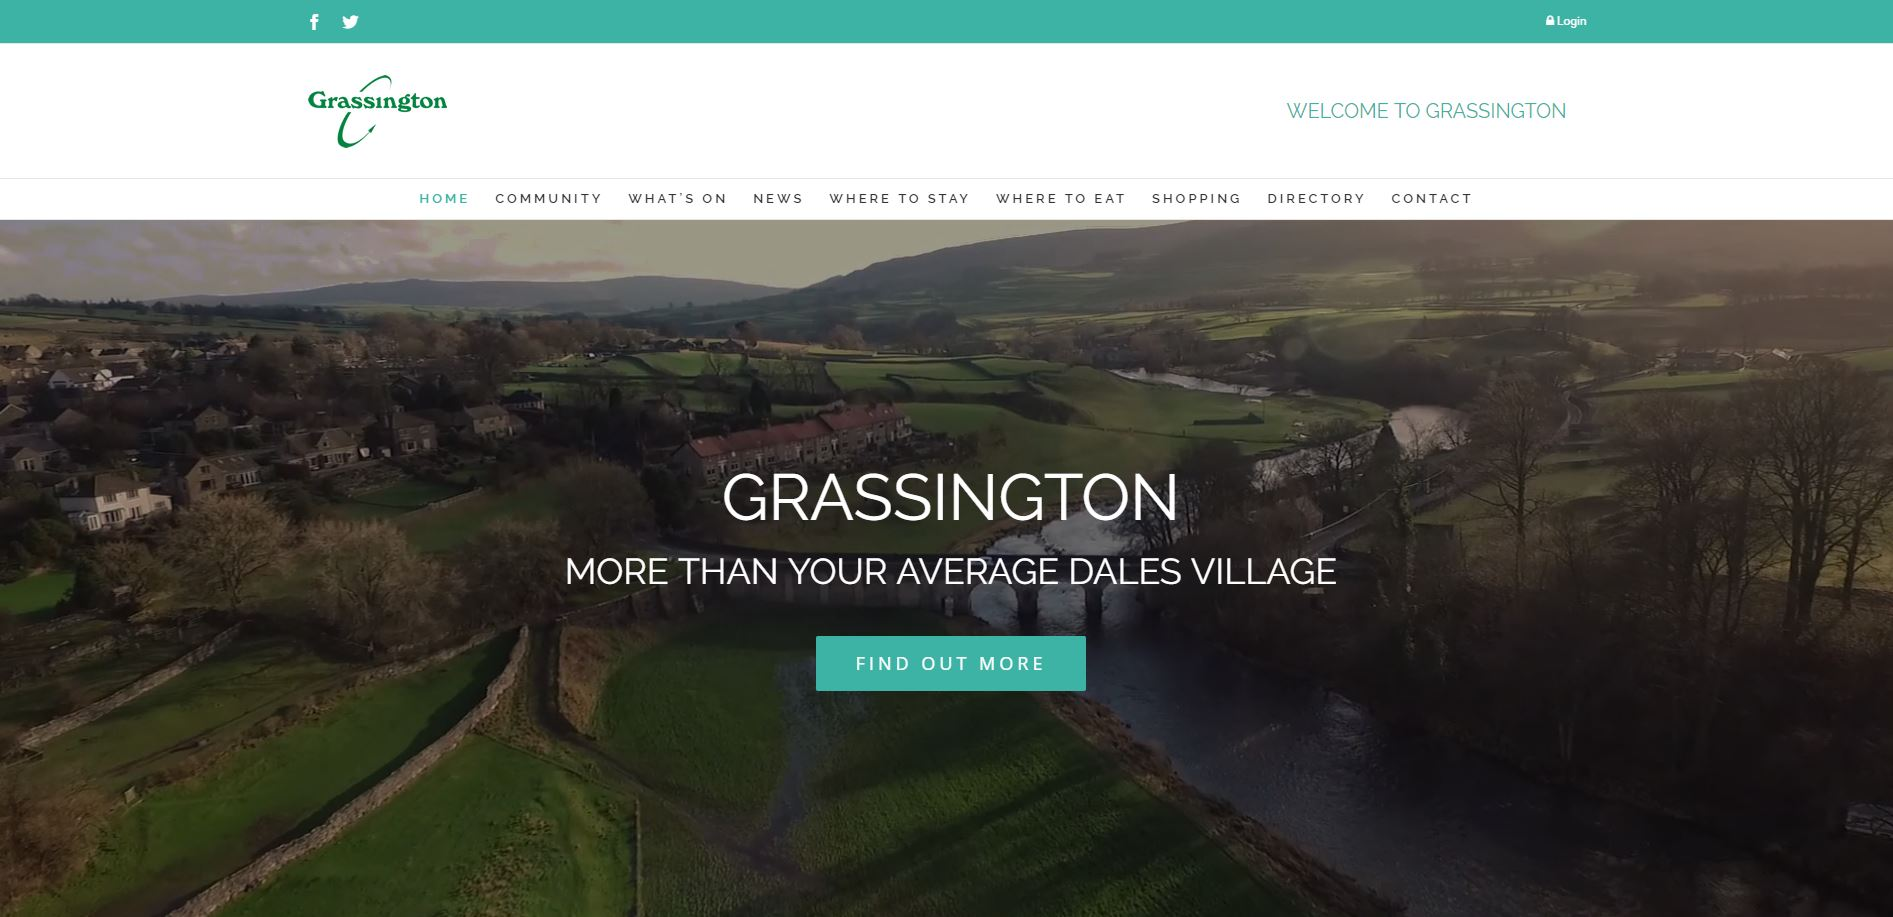 Grassington Village Home Page